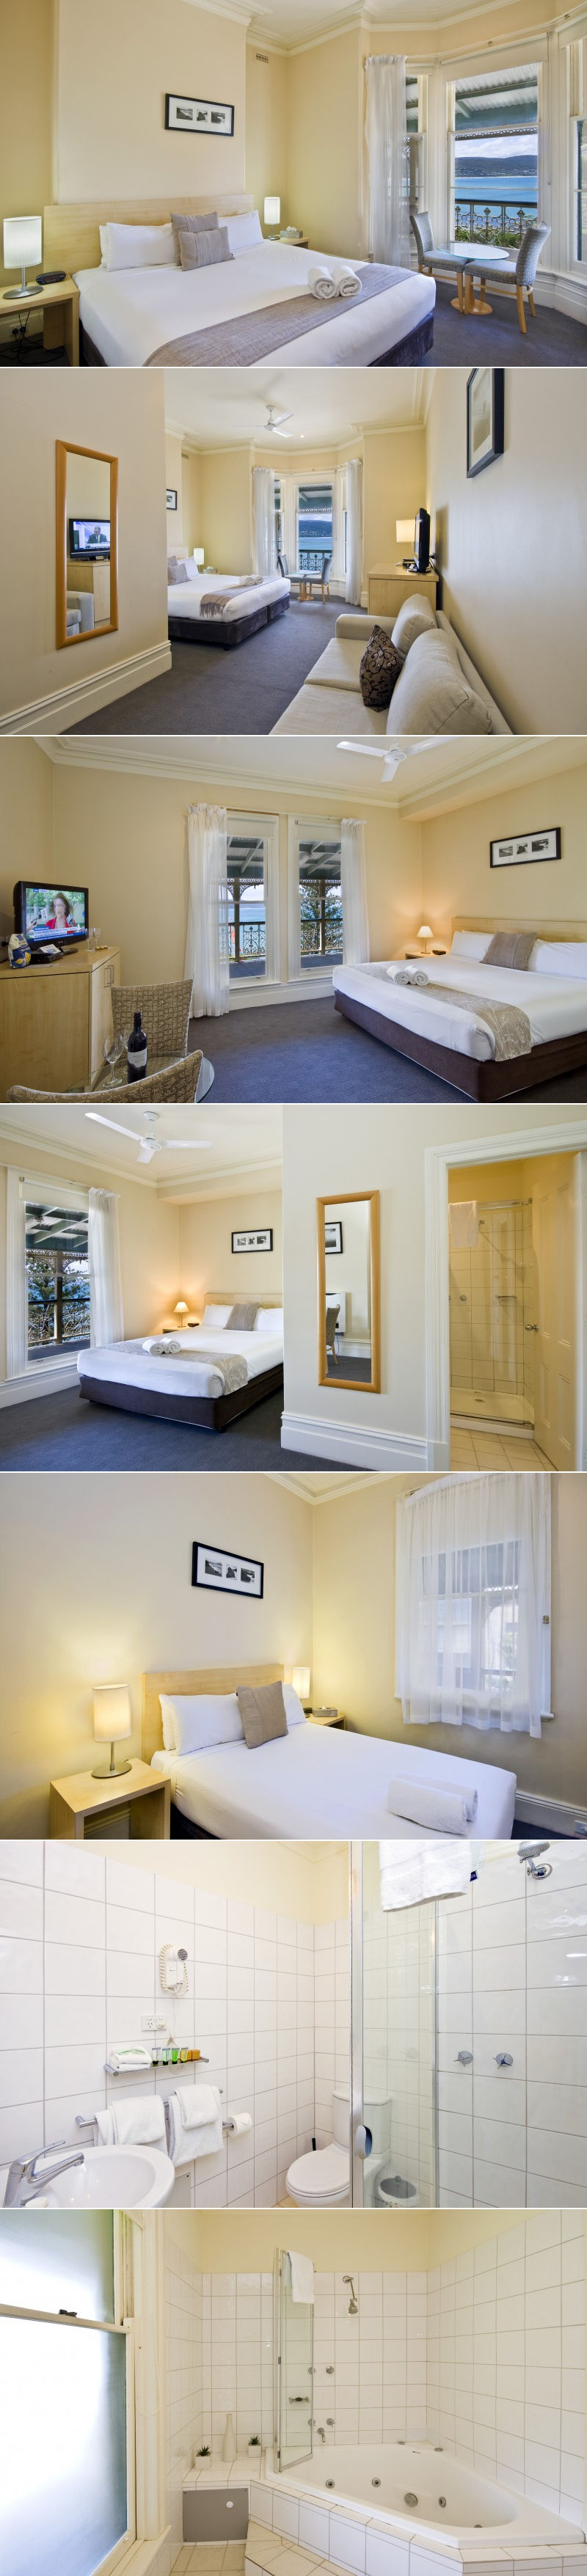 Grand Pacific Hotel - Hotel rooms